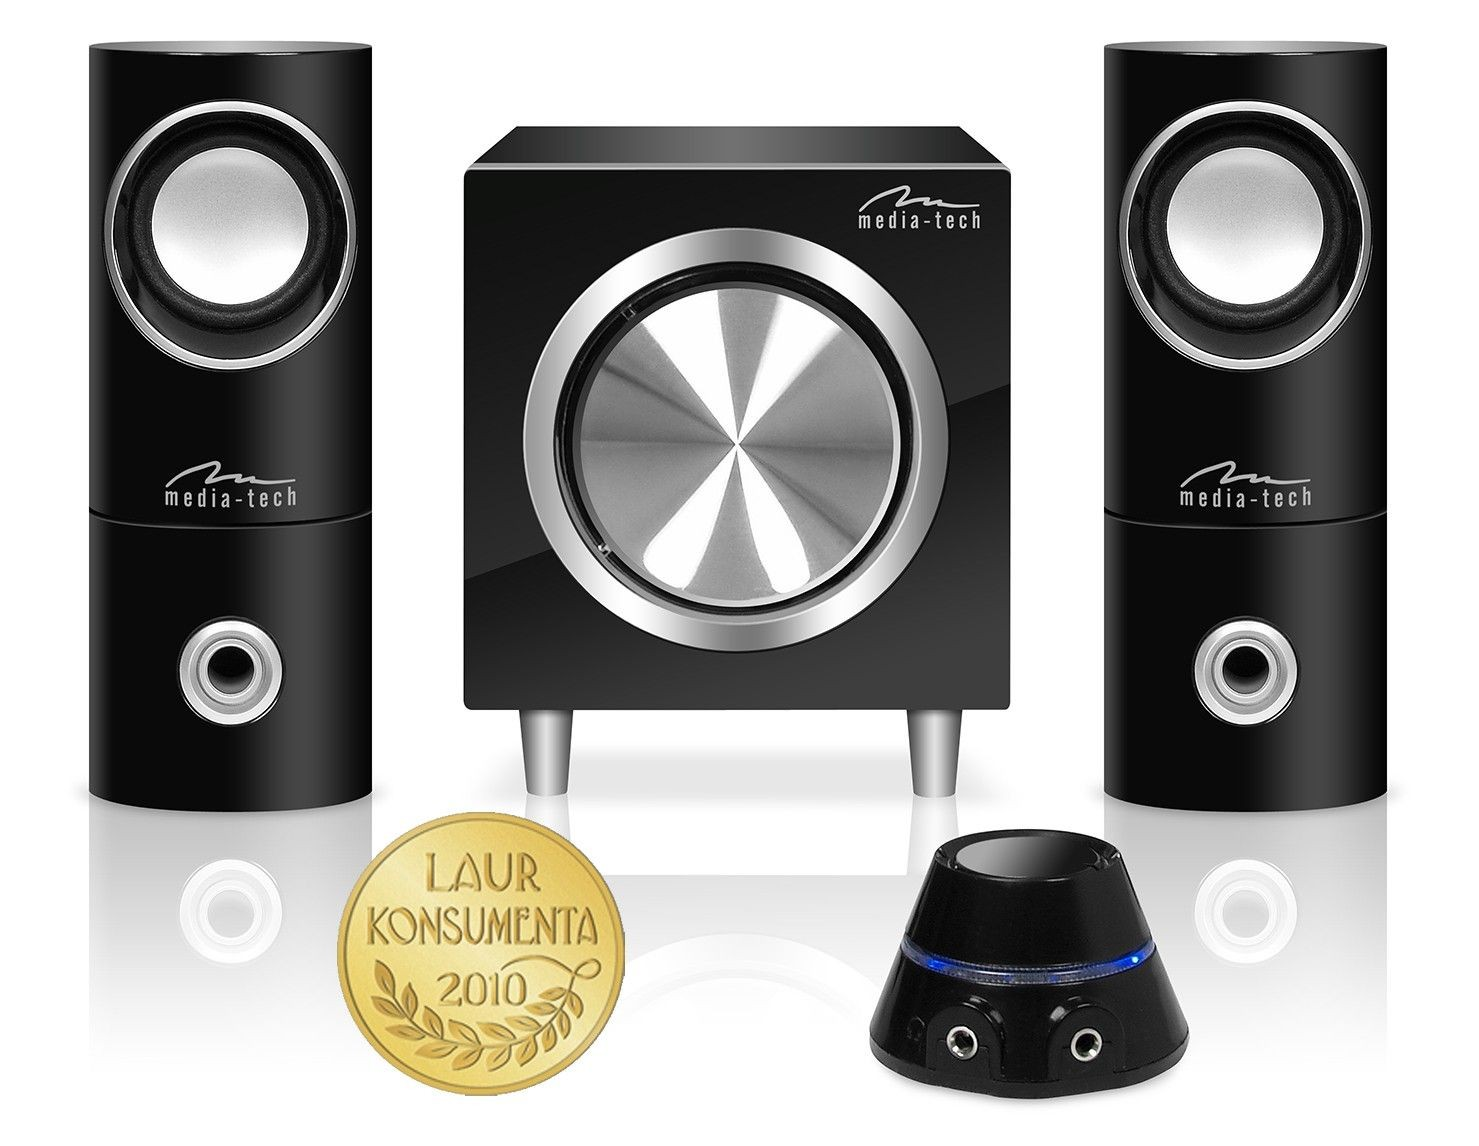 Media-Tech Głośniki komputerowe z pilotem SPEAKERS SET 2.1